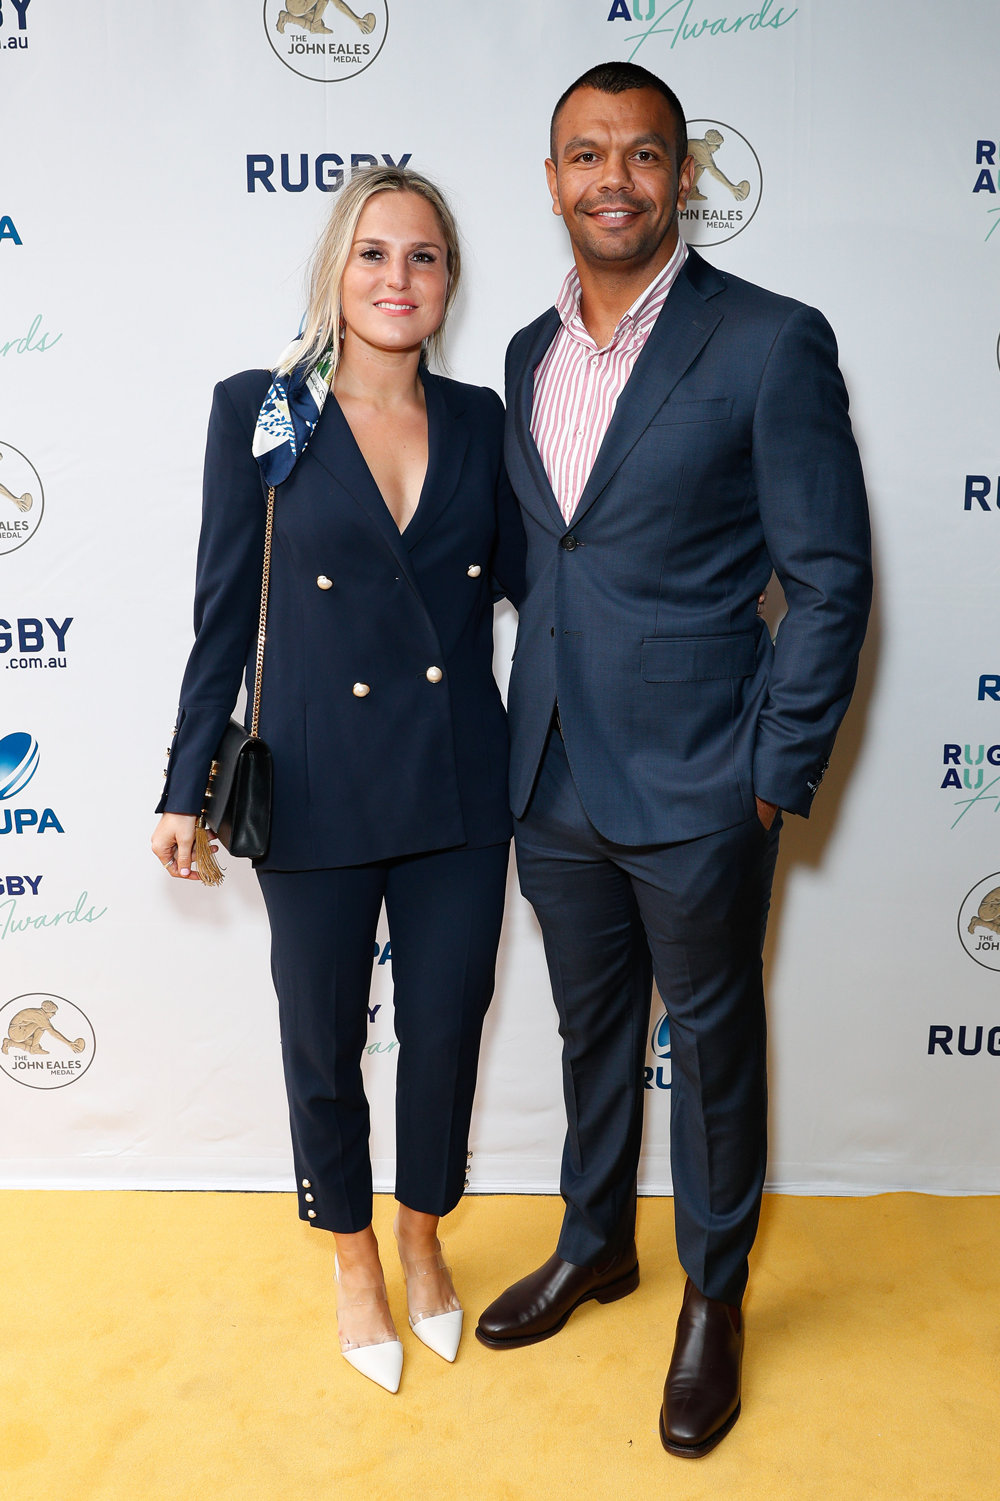 Kurtley Beale and partner Madi Blomberg at the Rugby Australia Awards. Photo: Getty Images